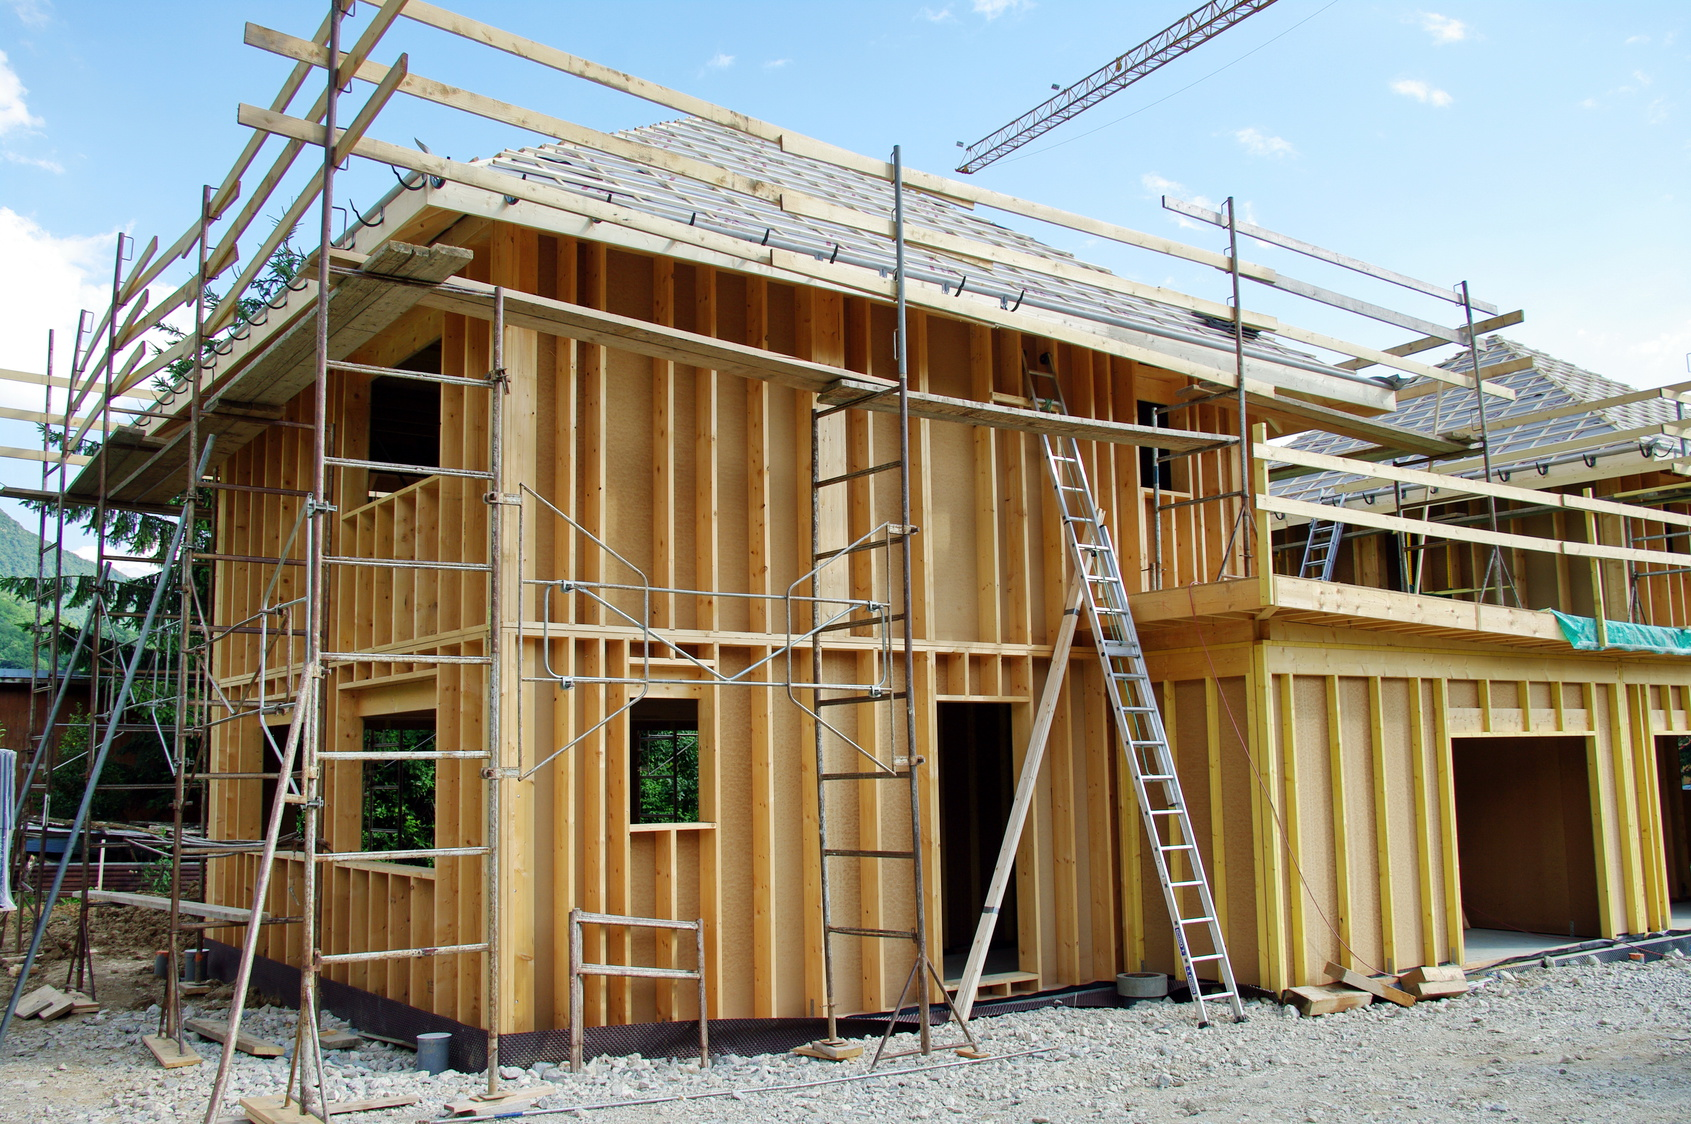 Les tapes de construction d une maison en kit for Construction bois maison